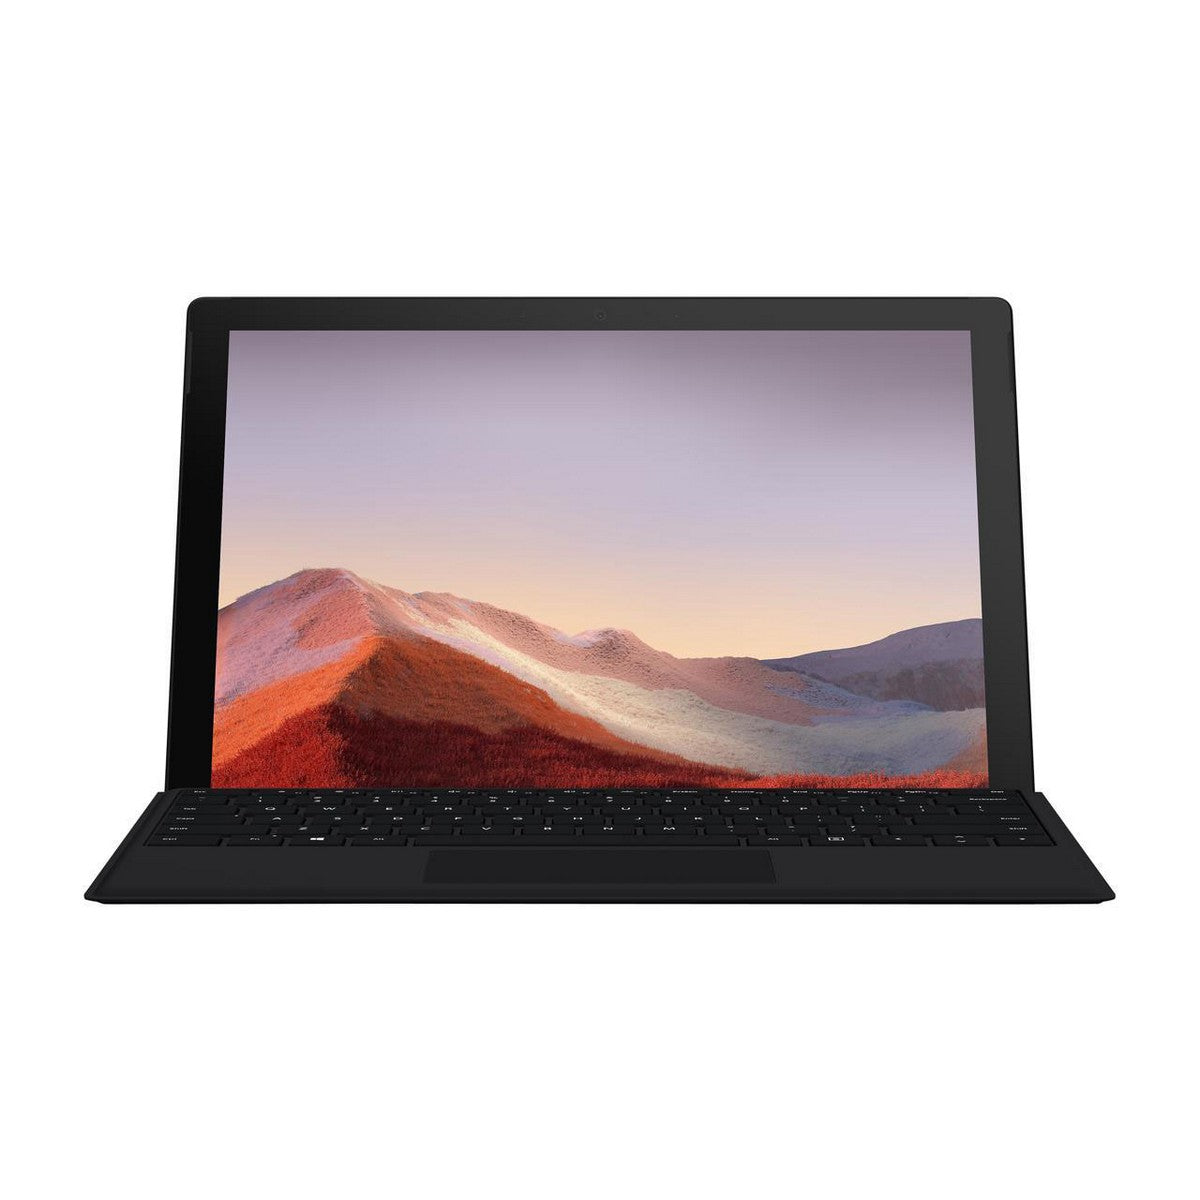 Microsoft Surface Pro 7 2 in 1 Laptop 12.3'' PixelSense , Intel Core i5 i5-1035G4, 8GB RAM, 128GB SSD, Touchscreen, Windows 10, English Keyboard, Platinum